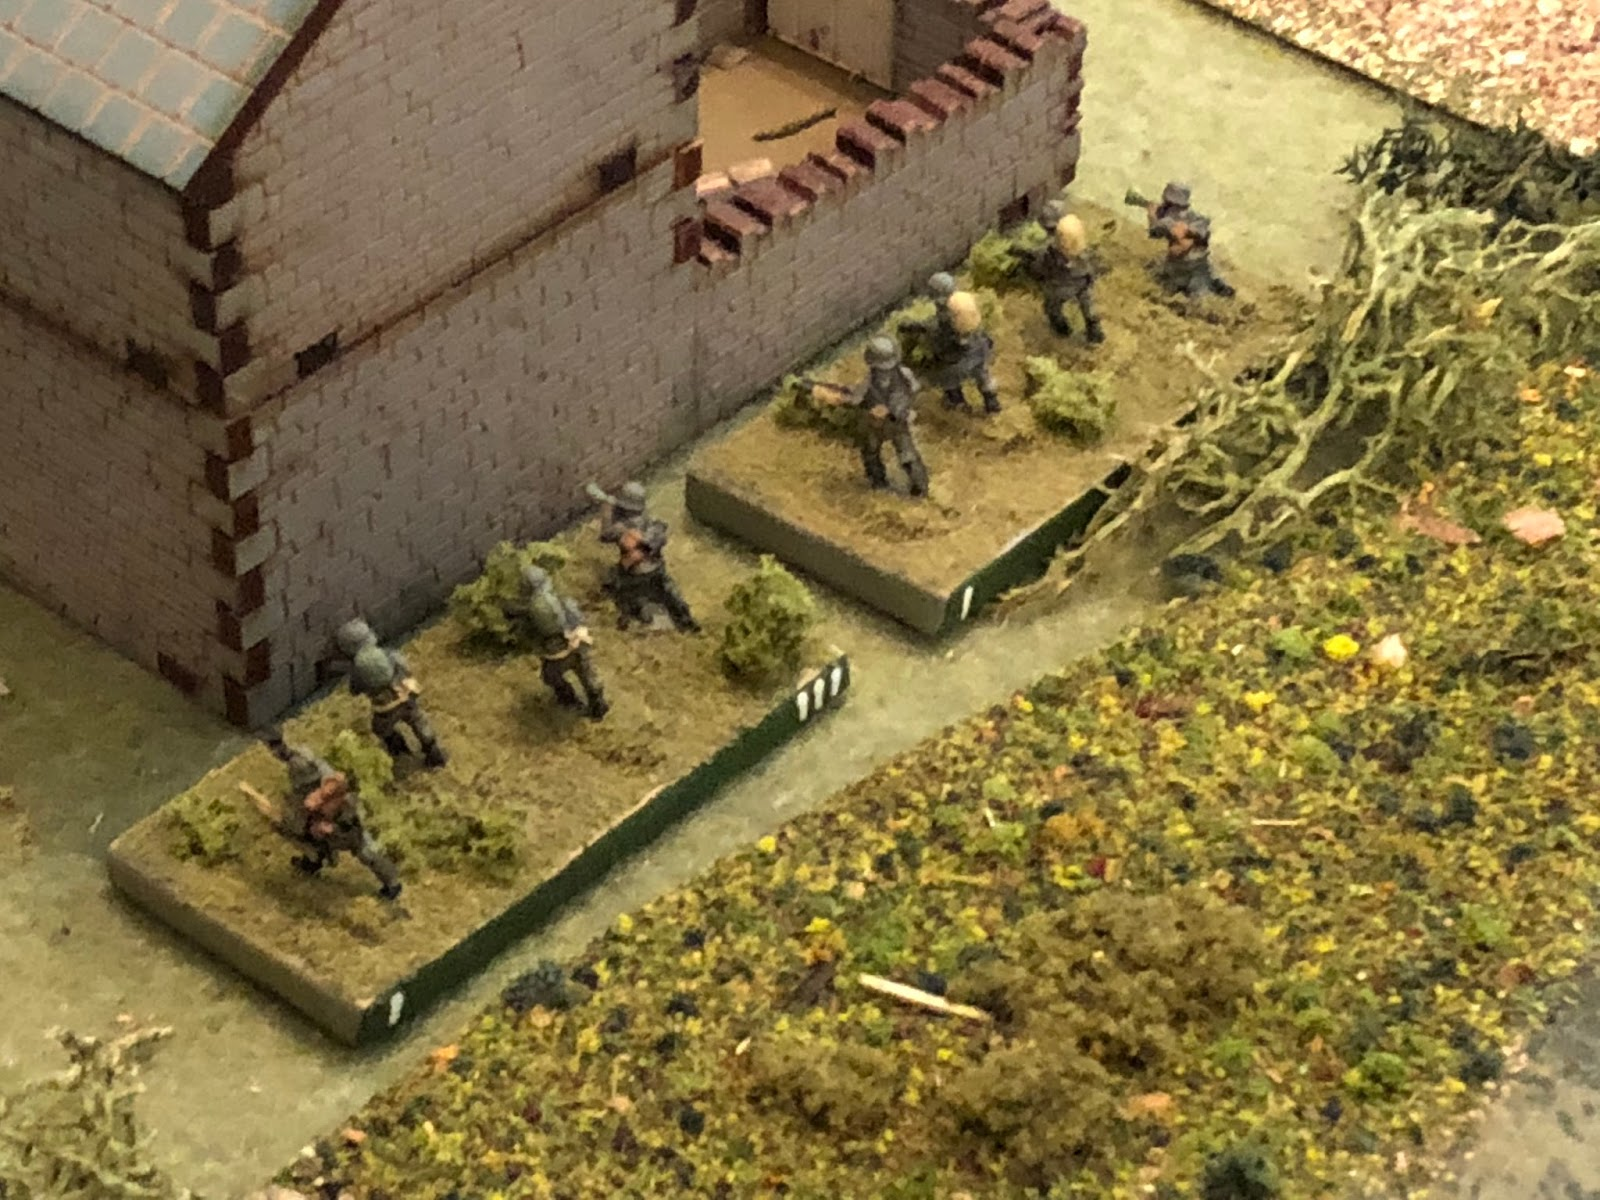 And the two German engineer squads are discovered before they can surprise anyone with their flamethrower...